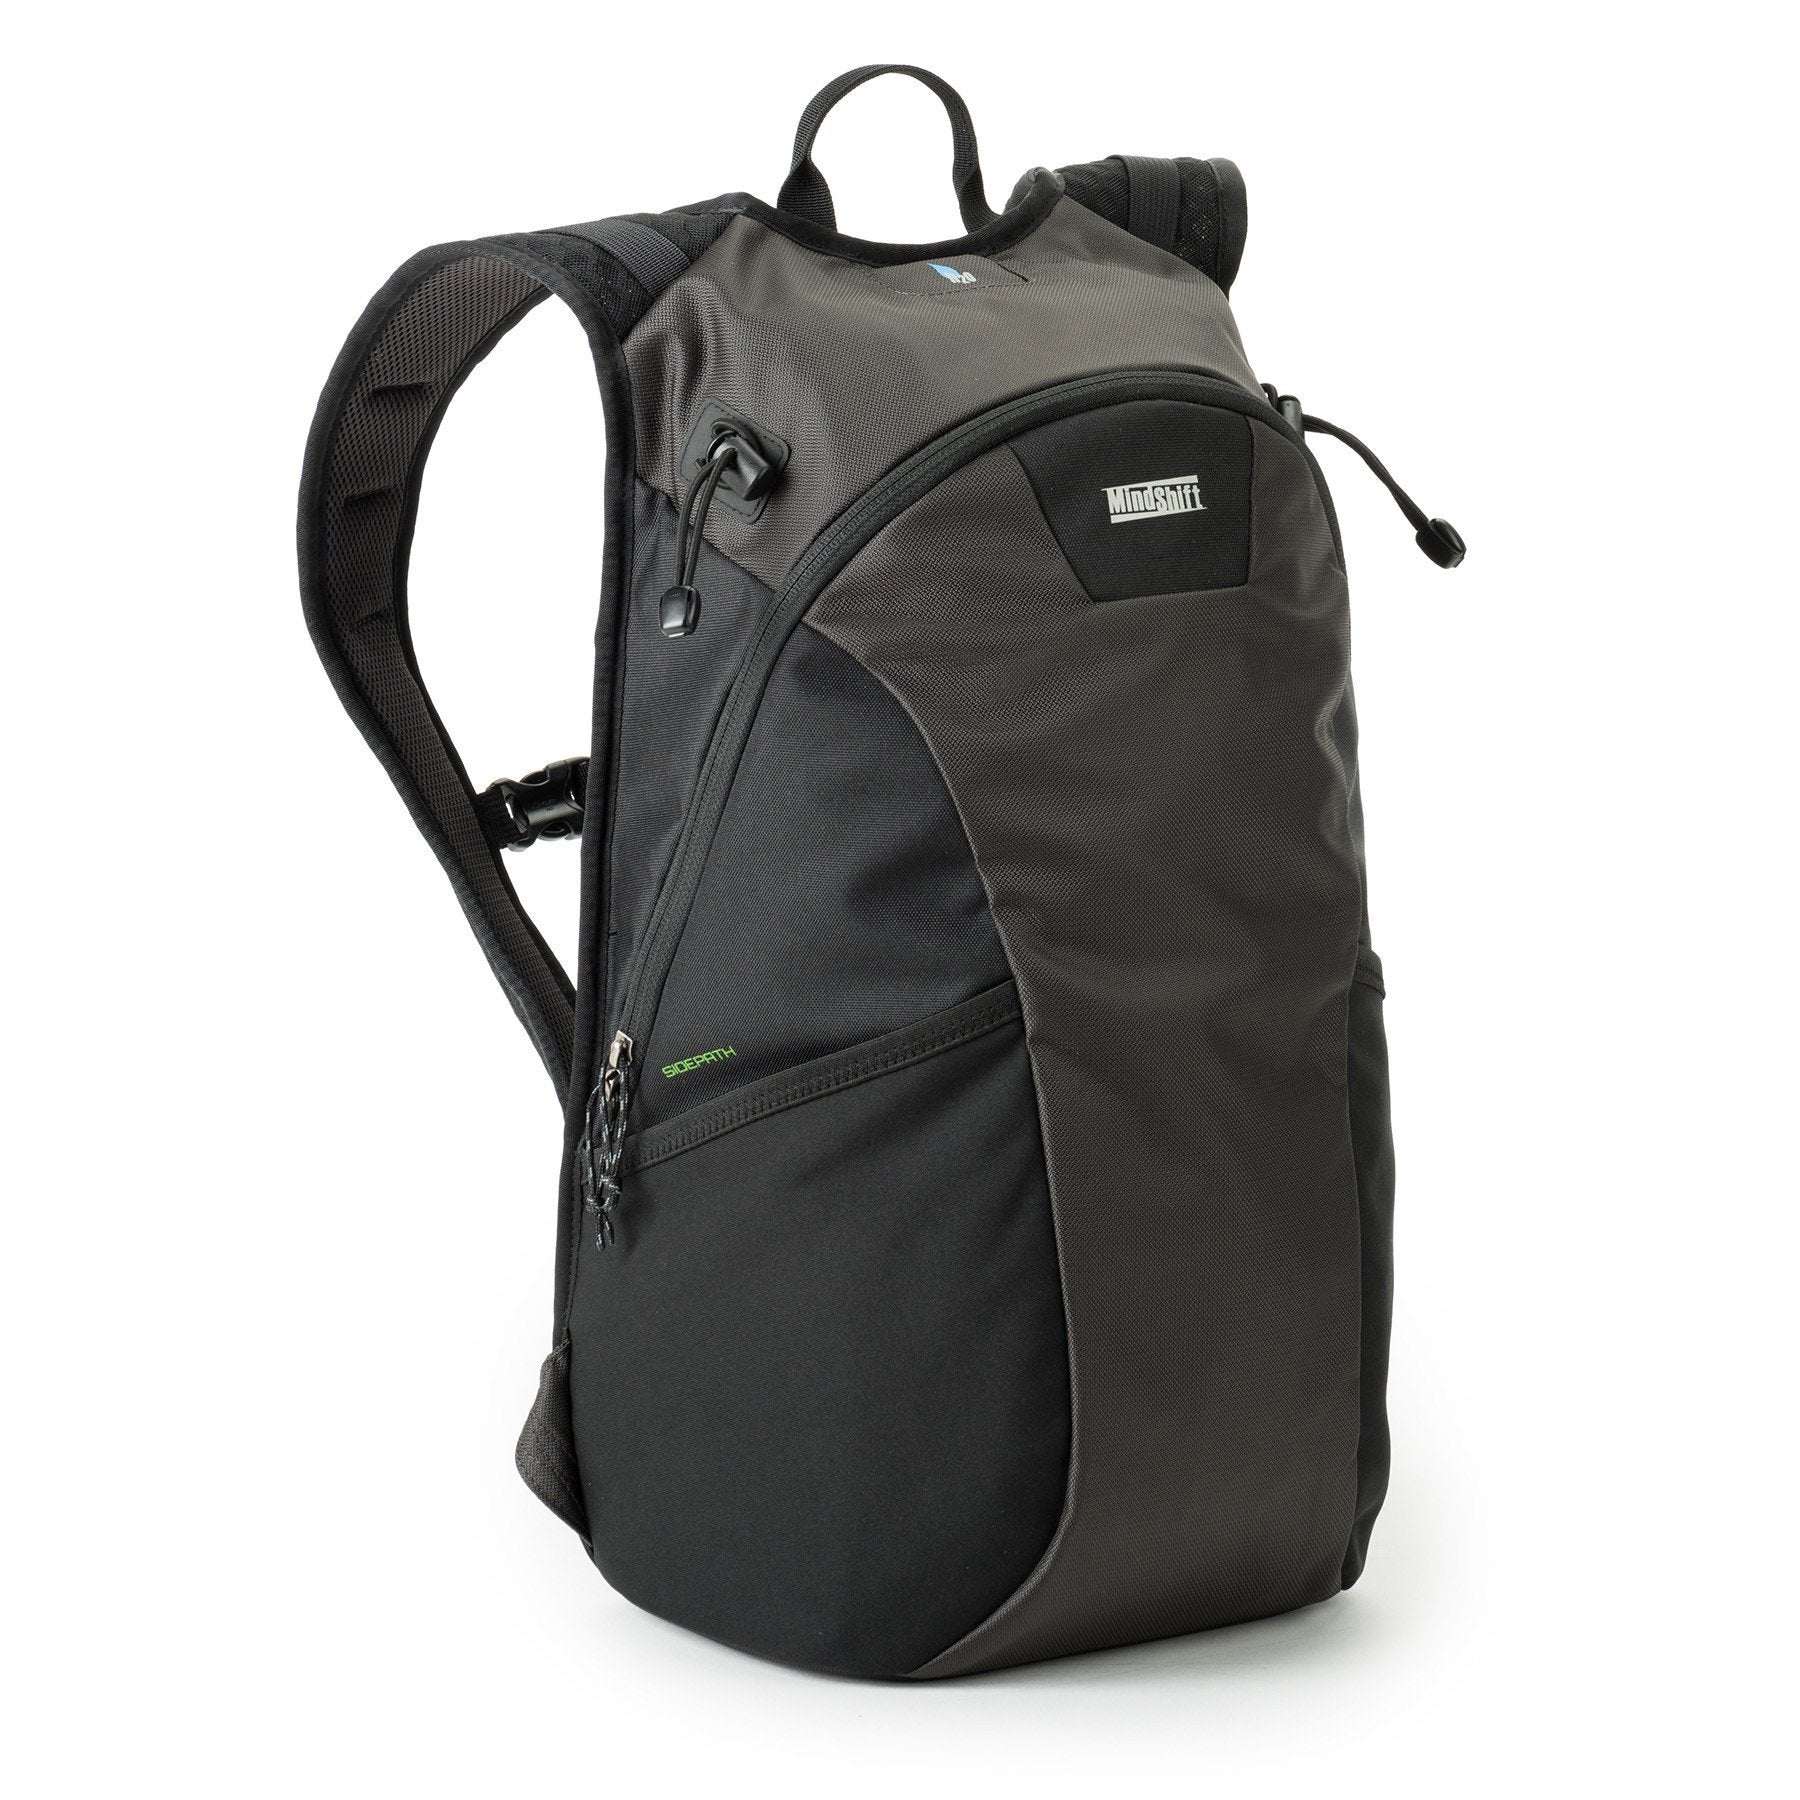 MindShift Gear - The SidePath is a lightweight backpack (1.6 lbs.) made with superior materials and construction.